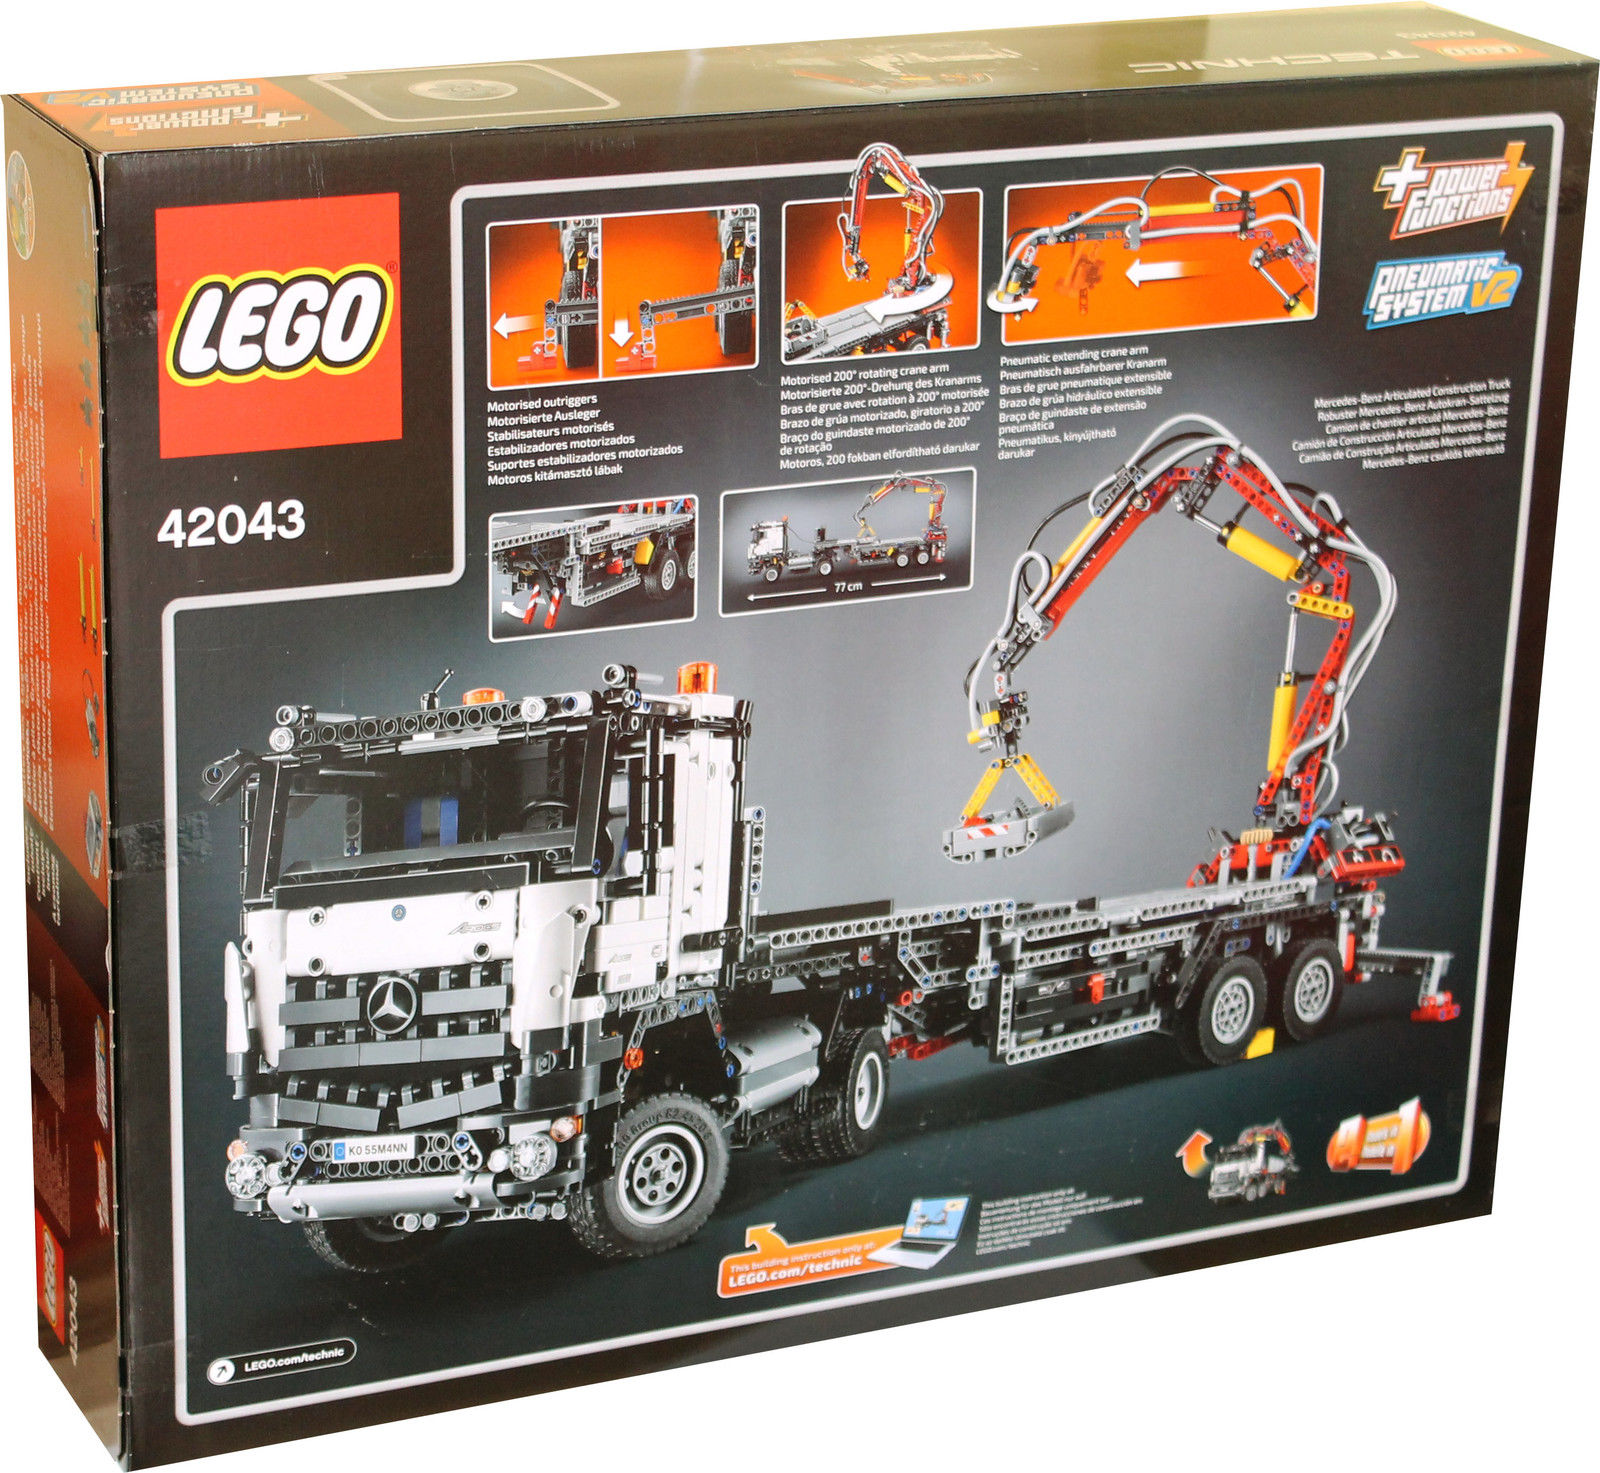 2 in 1 lego technic mercedes benz arocs 3245 lkw kranwagen. Black Bedroom Furniture Sets. Home Design Ideas